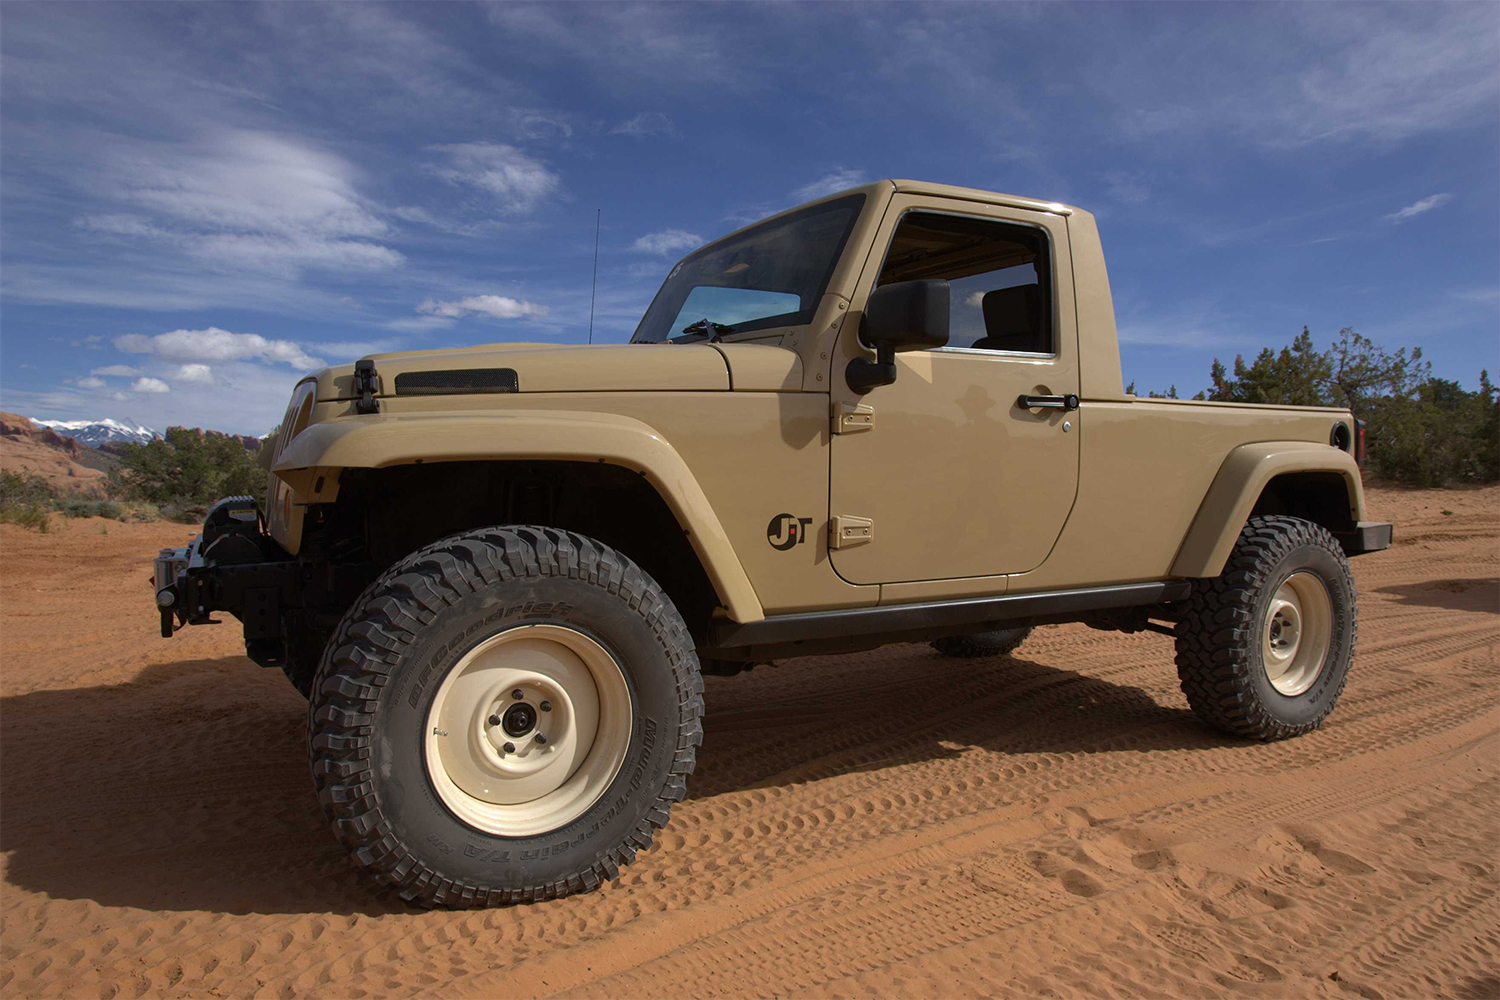 A beige two-door Jeep Wrangler truck in the desert at the Easter Jeep Safari